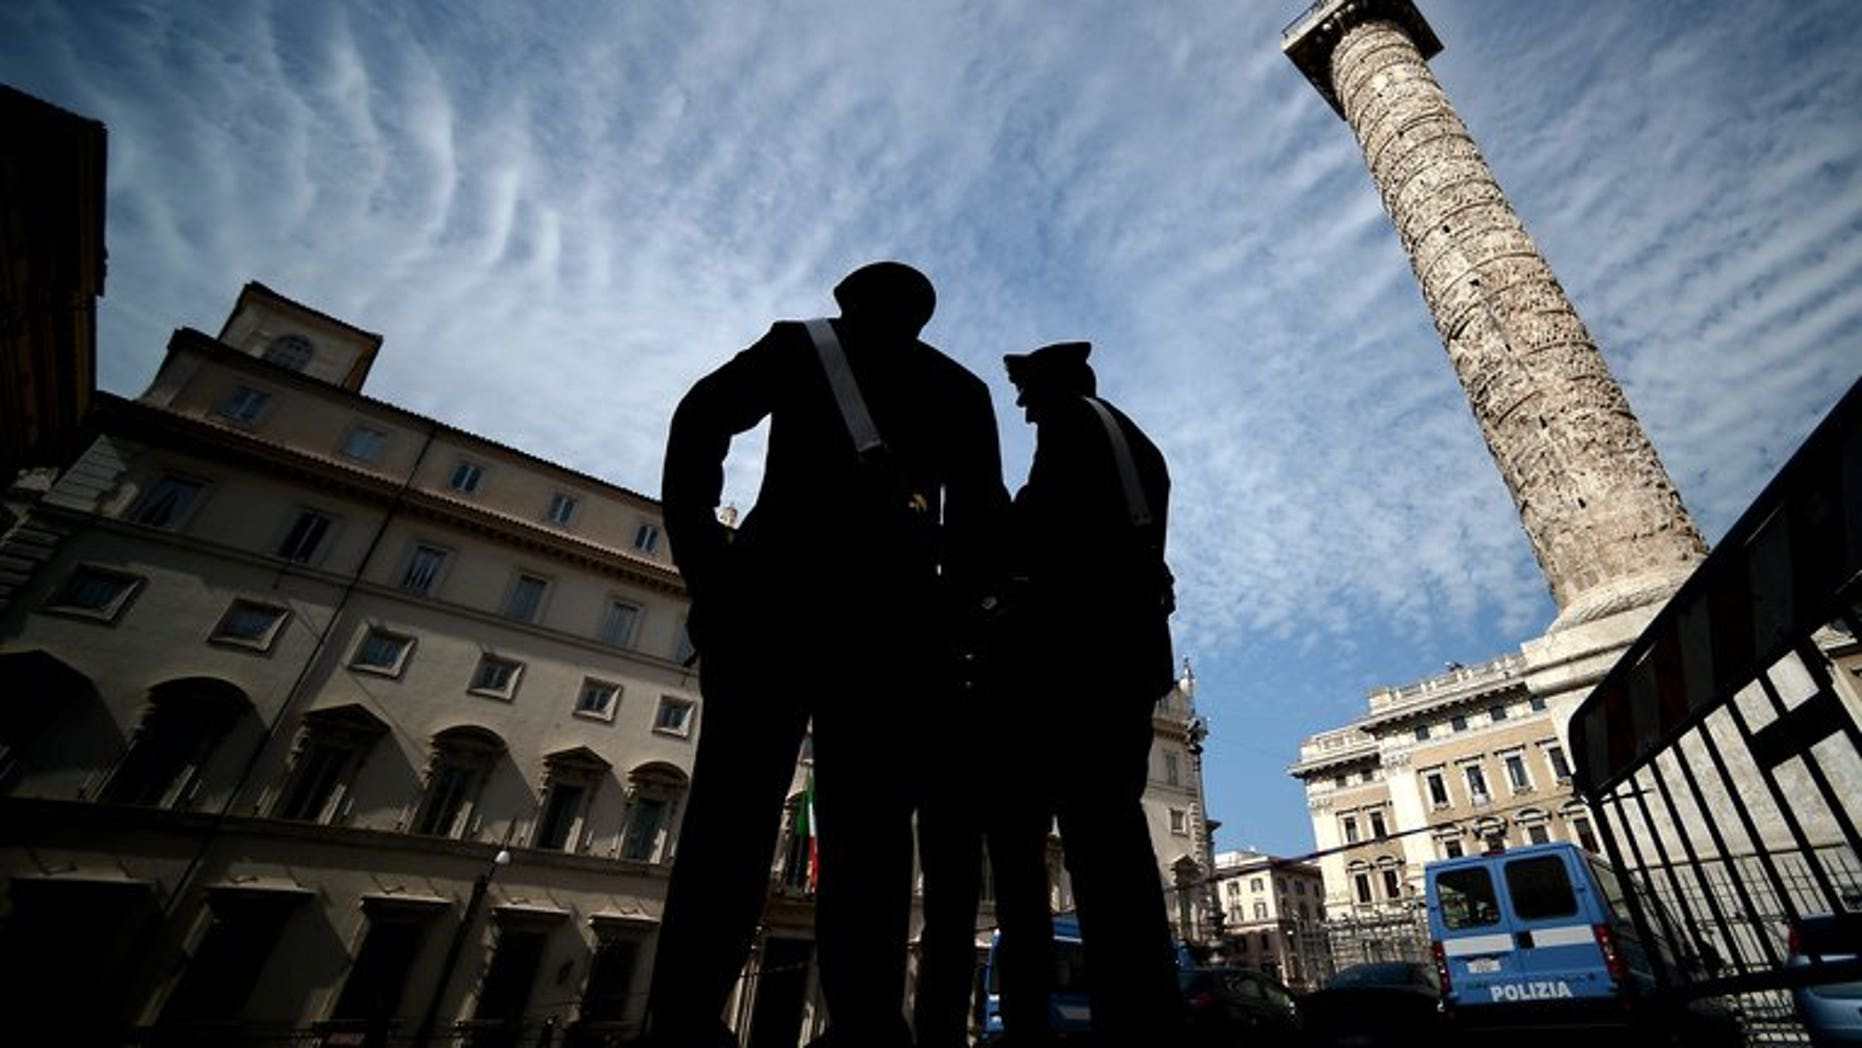 File picture shows a police patrol in Rome. Italian police said they launched two major anti-mafia operations Friday in Rome and the southern region of Calabria, targeting around 100 people